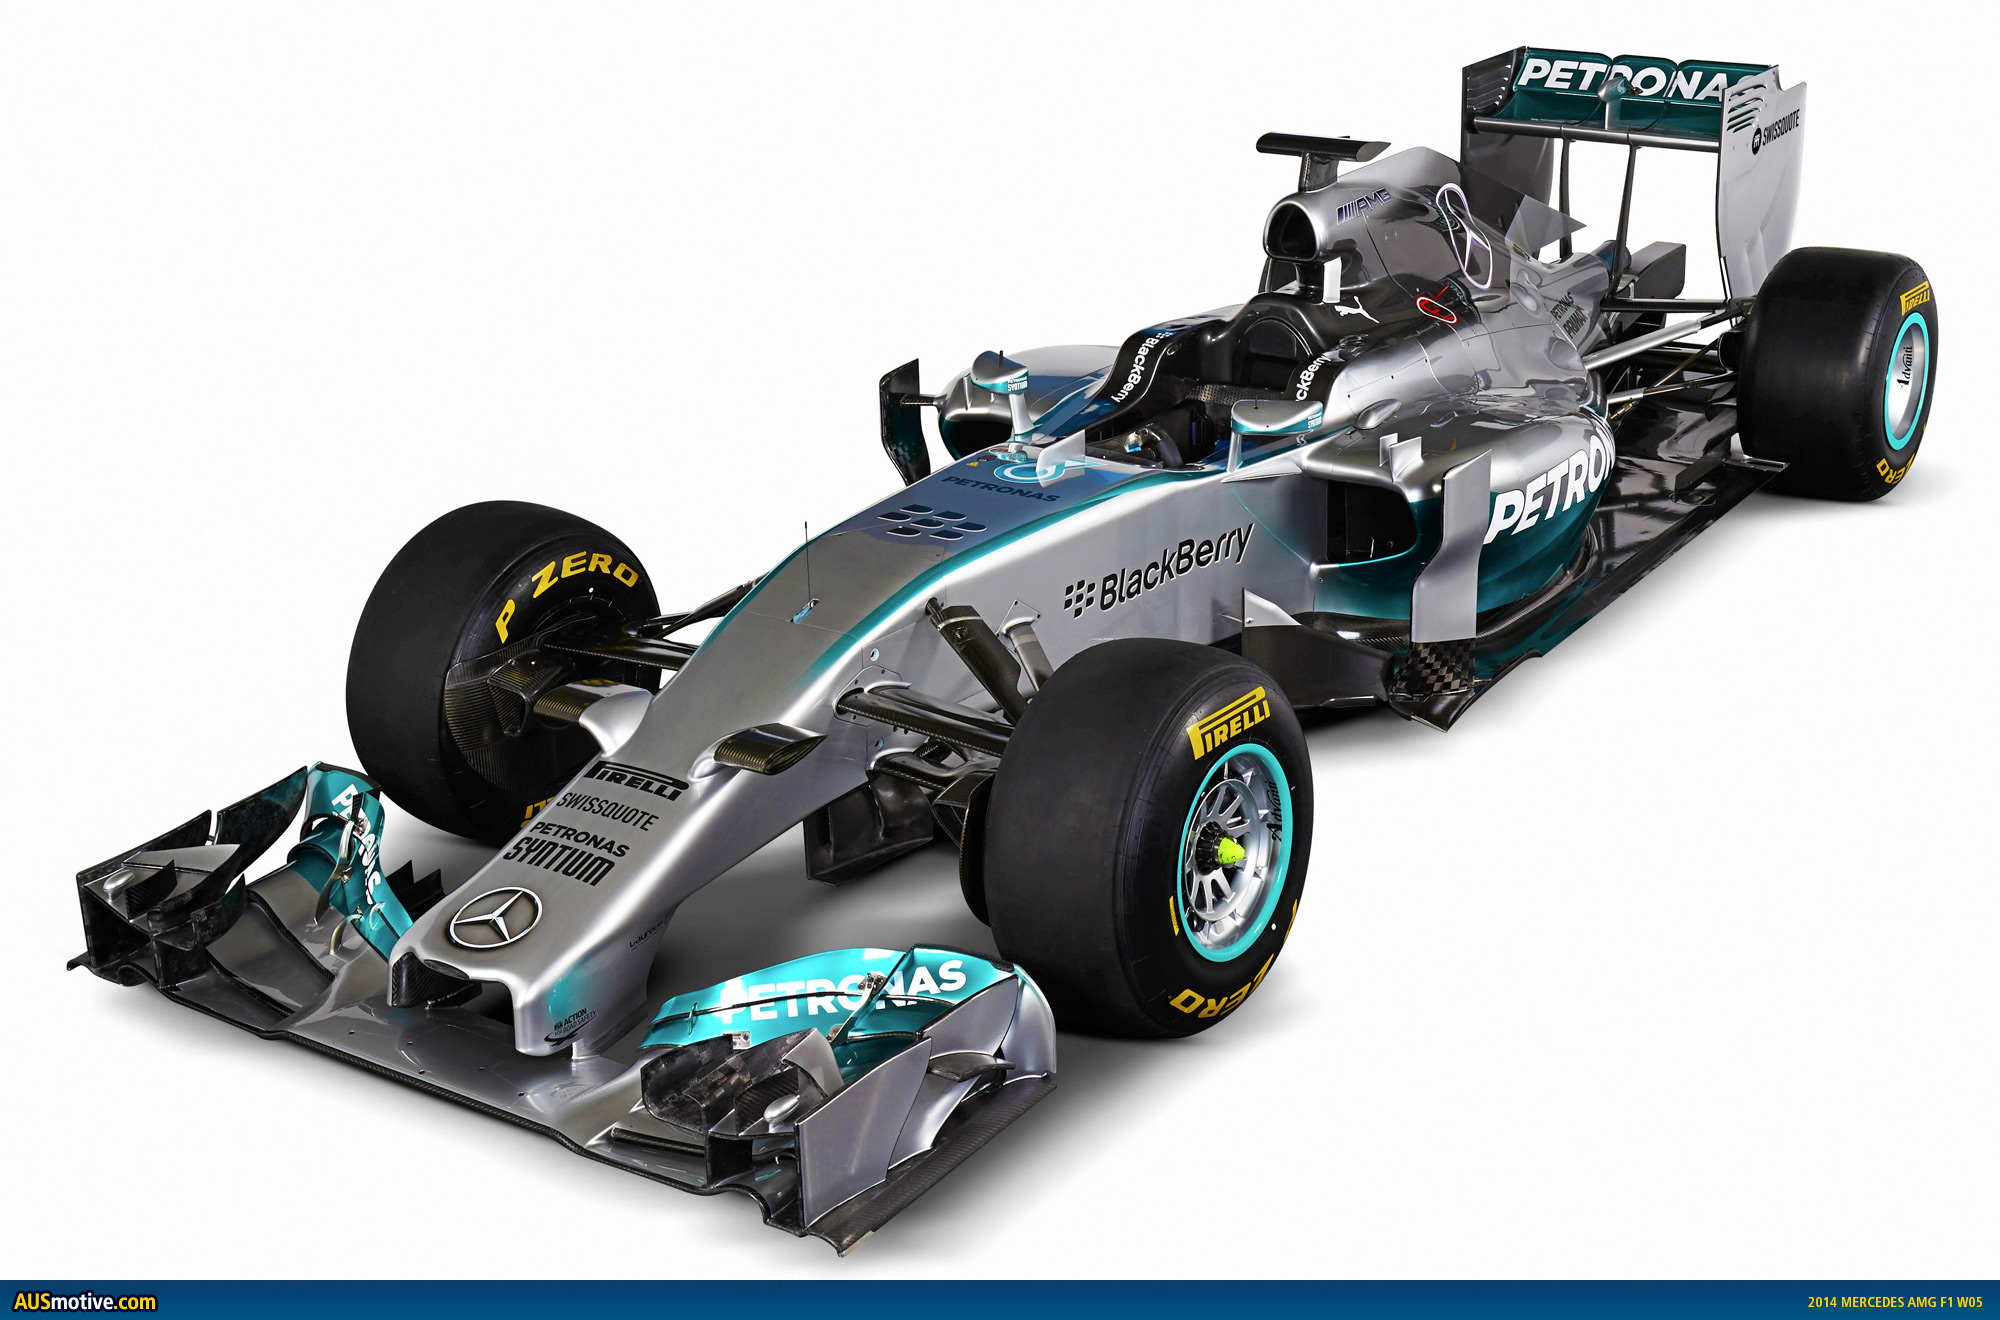 2014 mercedes amg f1 w05 revealed for Mercedes benz f1